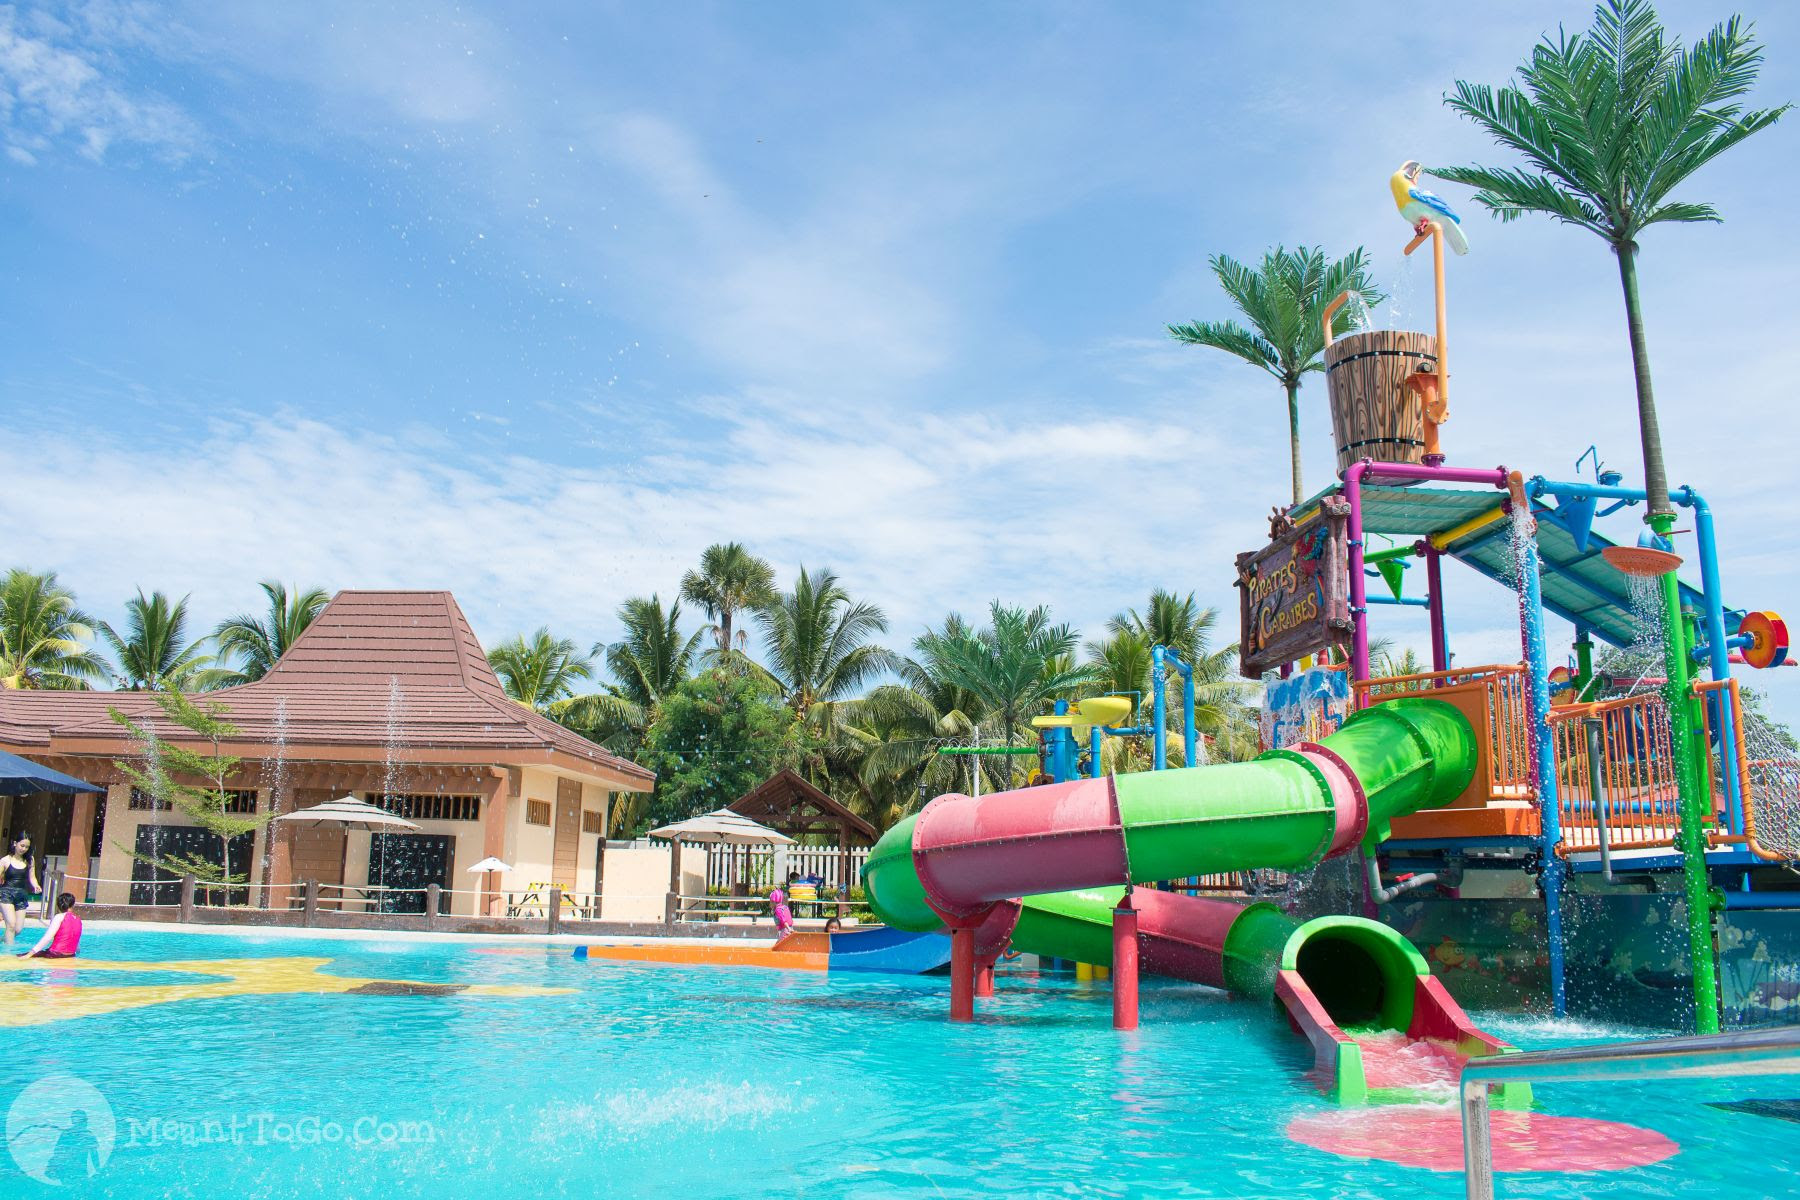 Seven Seas Waterpark & Resort - A Travel Guide